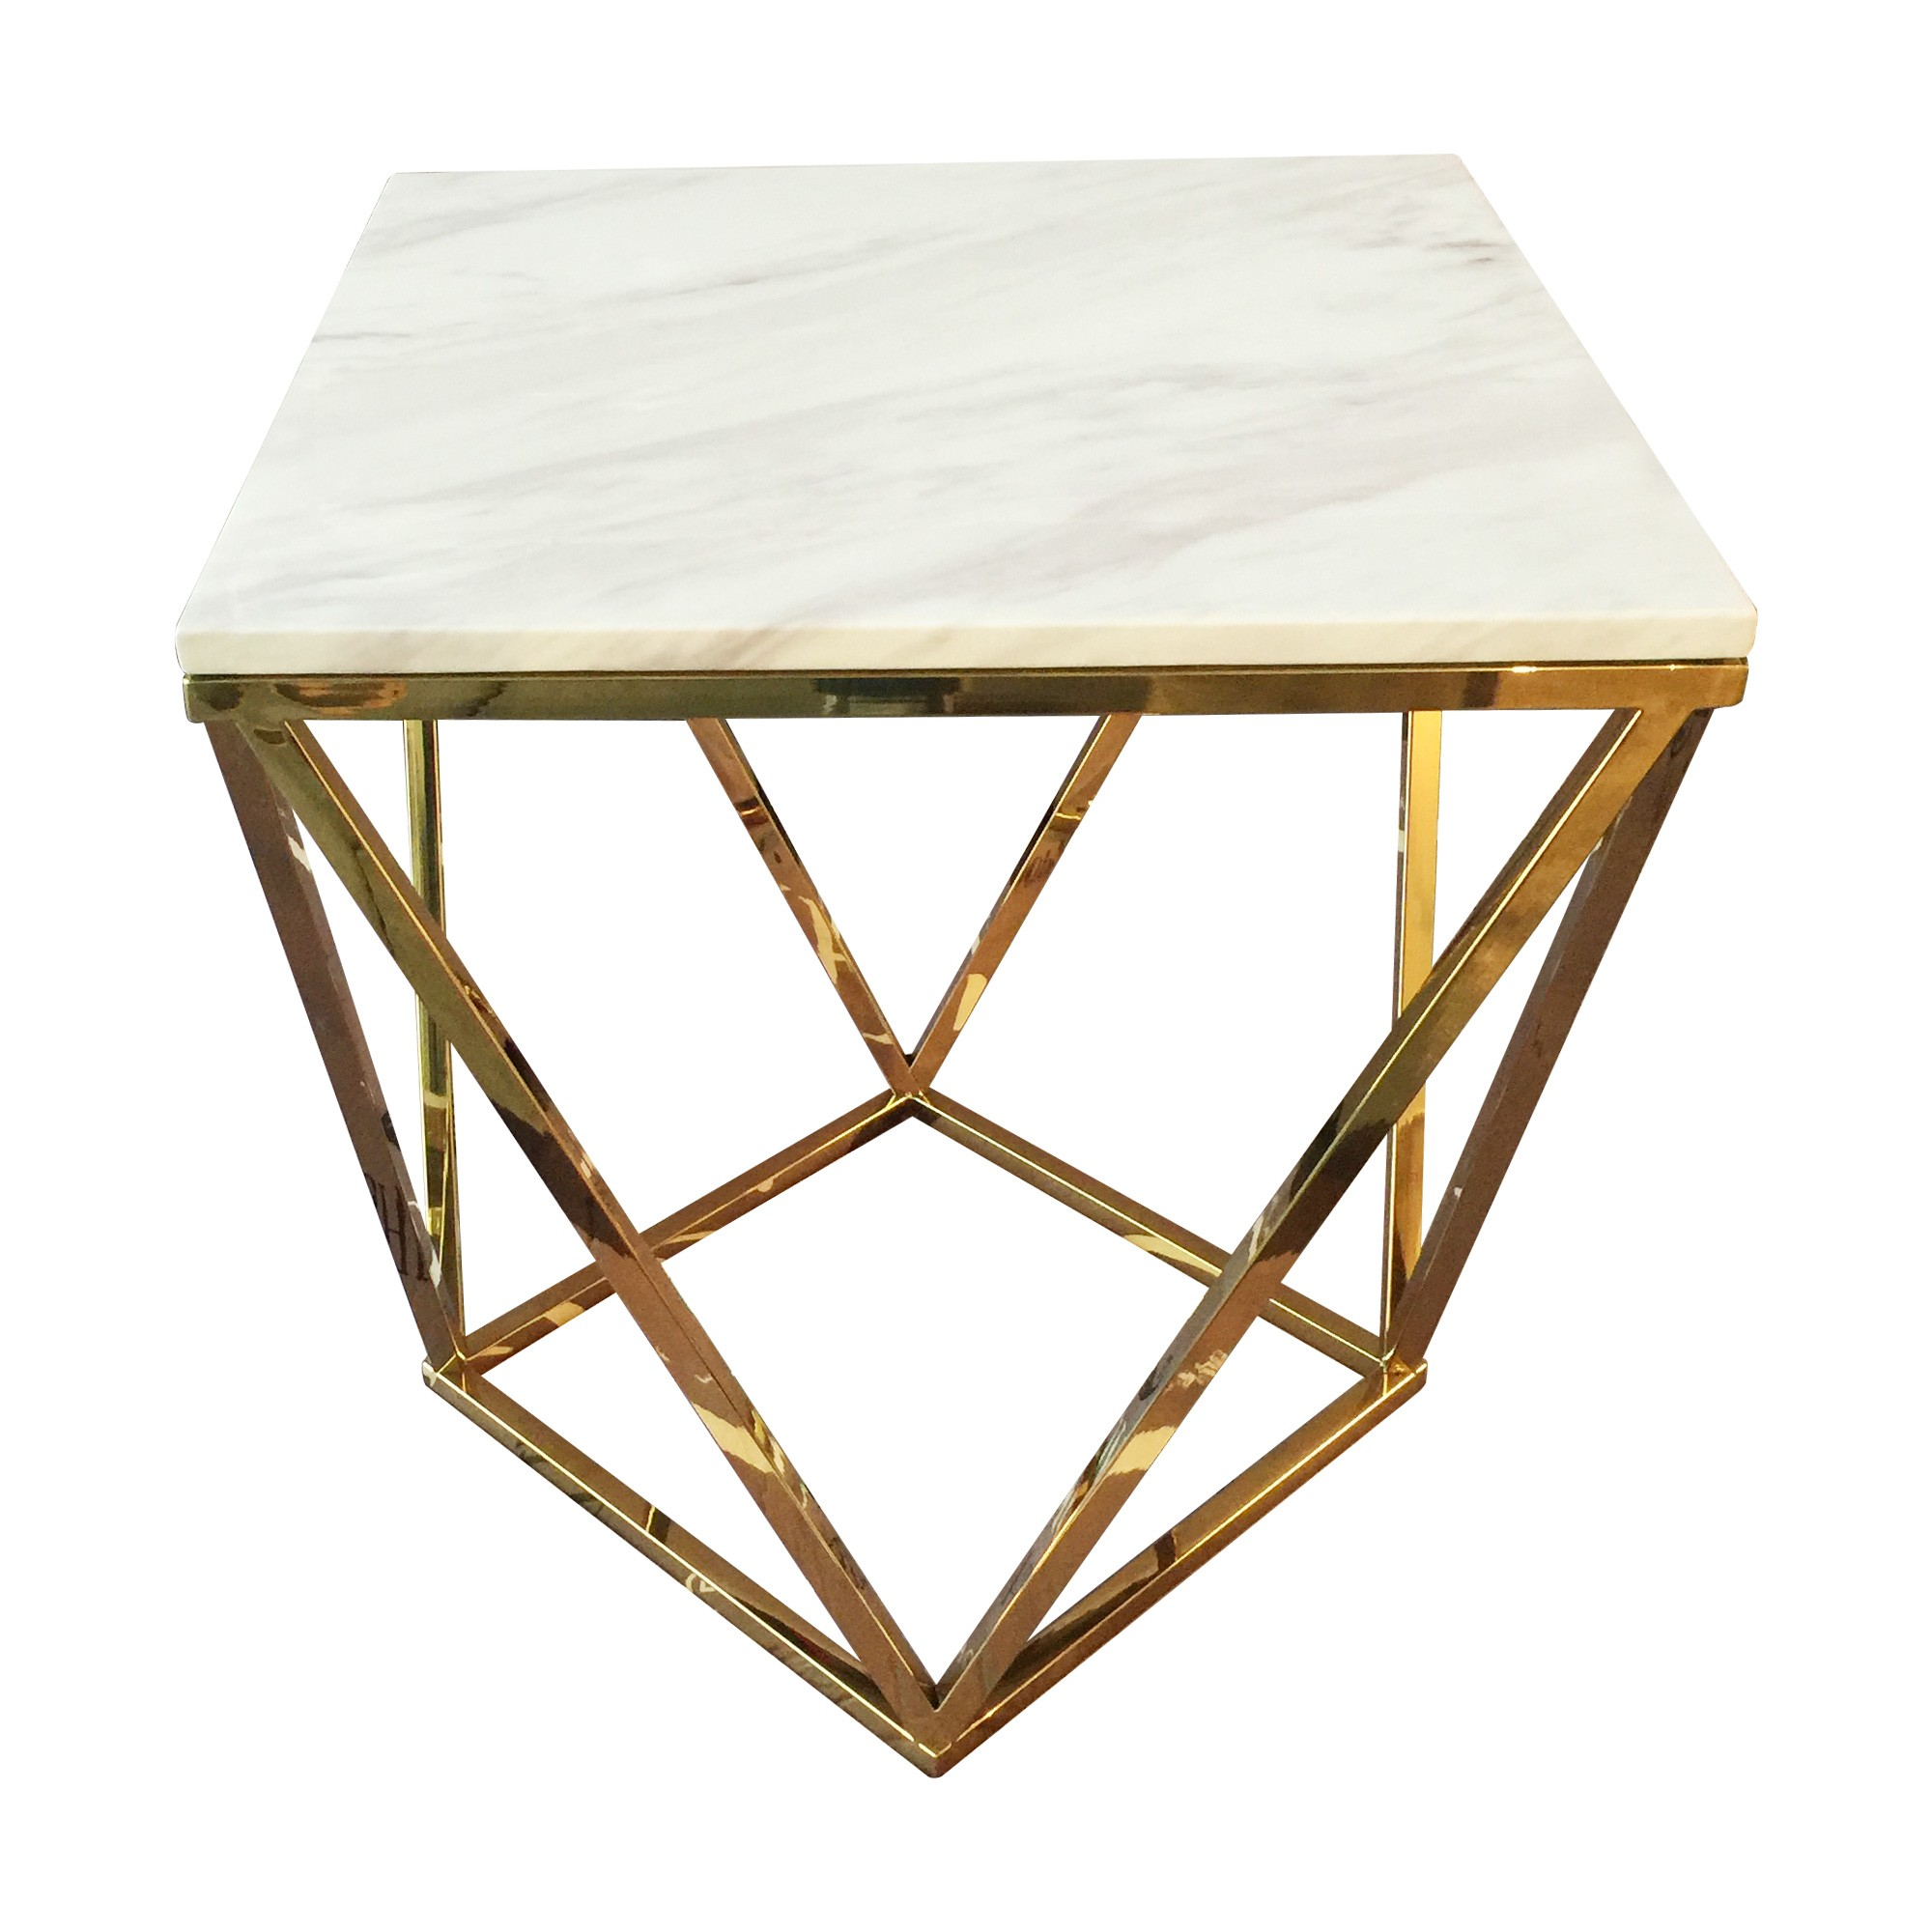 Philip Marble Topped Metal Square Coffee Table, 91cm